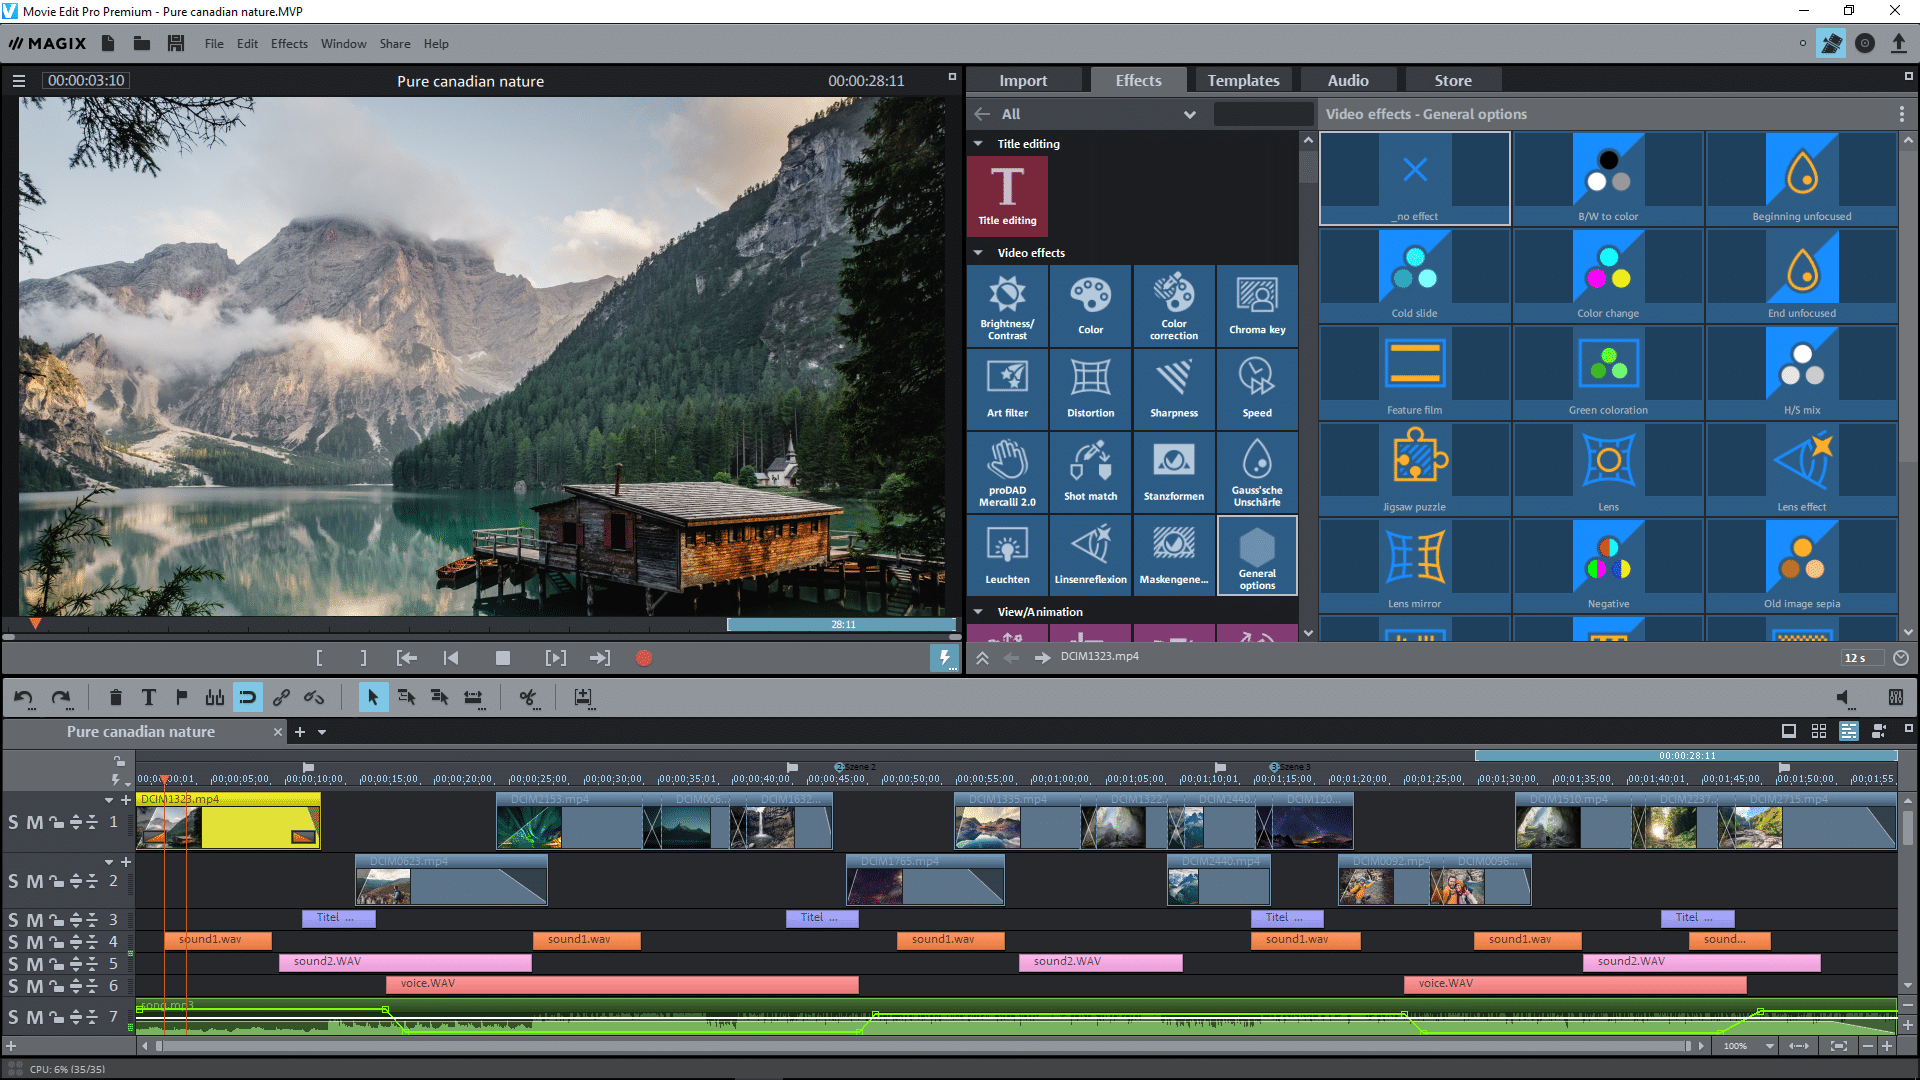 MAGIX Movie Edit Pro Premium Serial Key